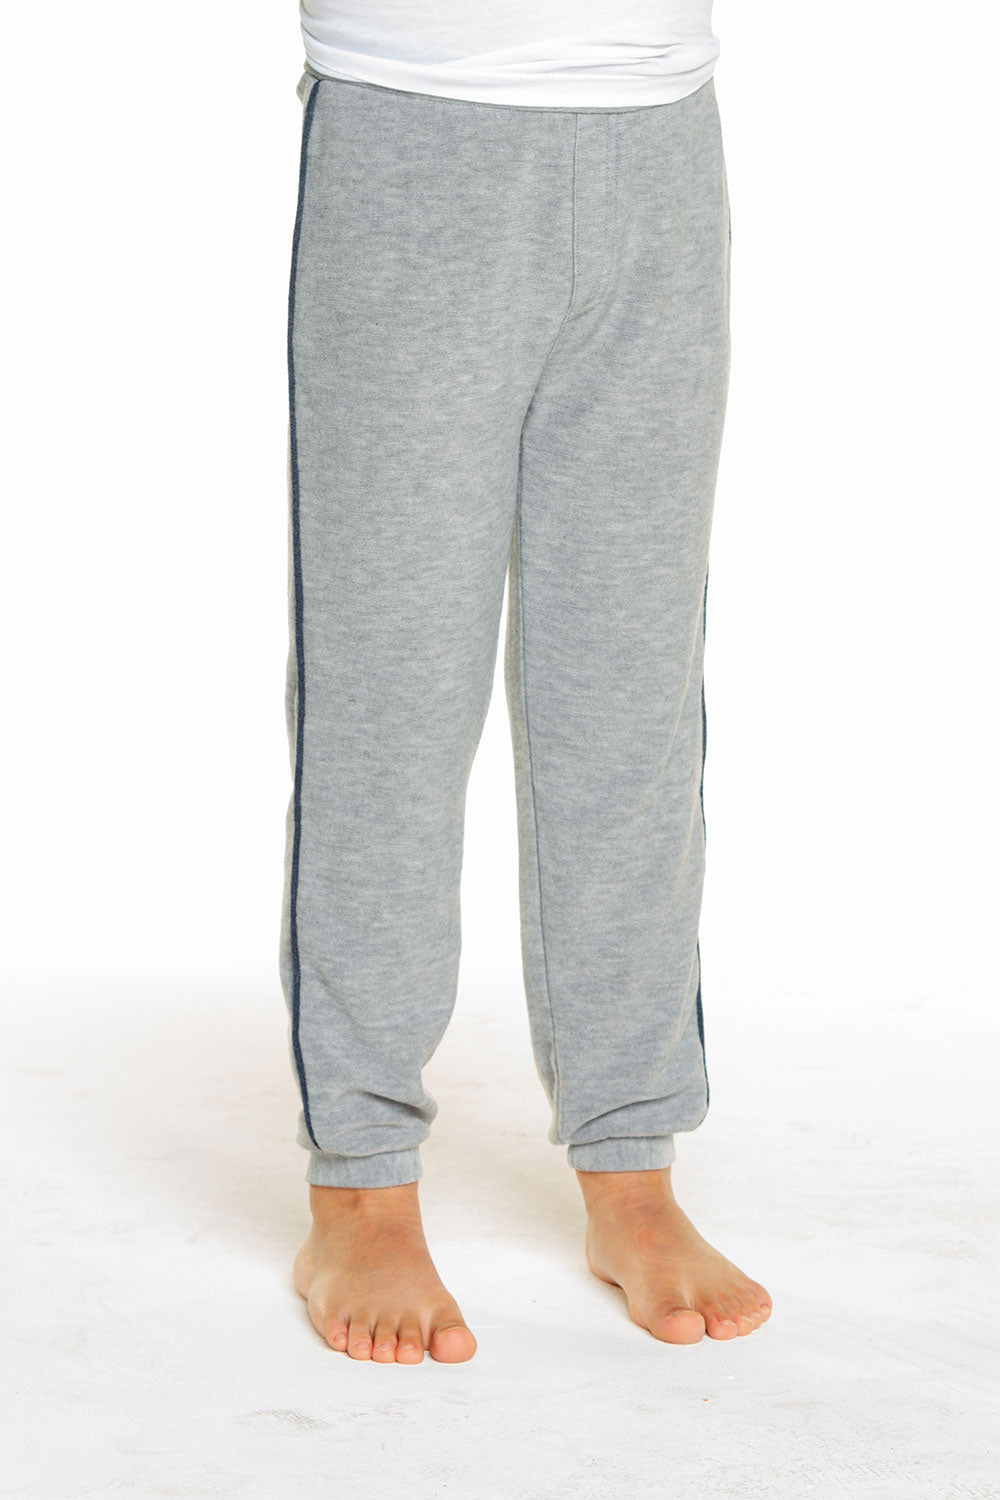 Boys Cozy Knit Contrast Piping Lounge Pant BOYS chaserbrand4.myshopify.com